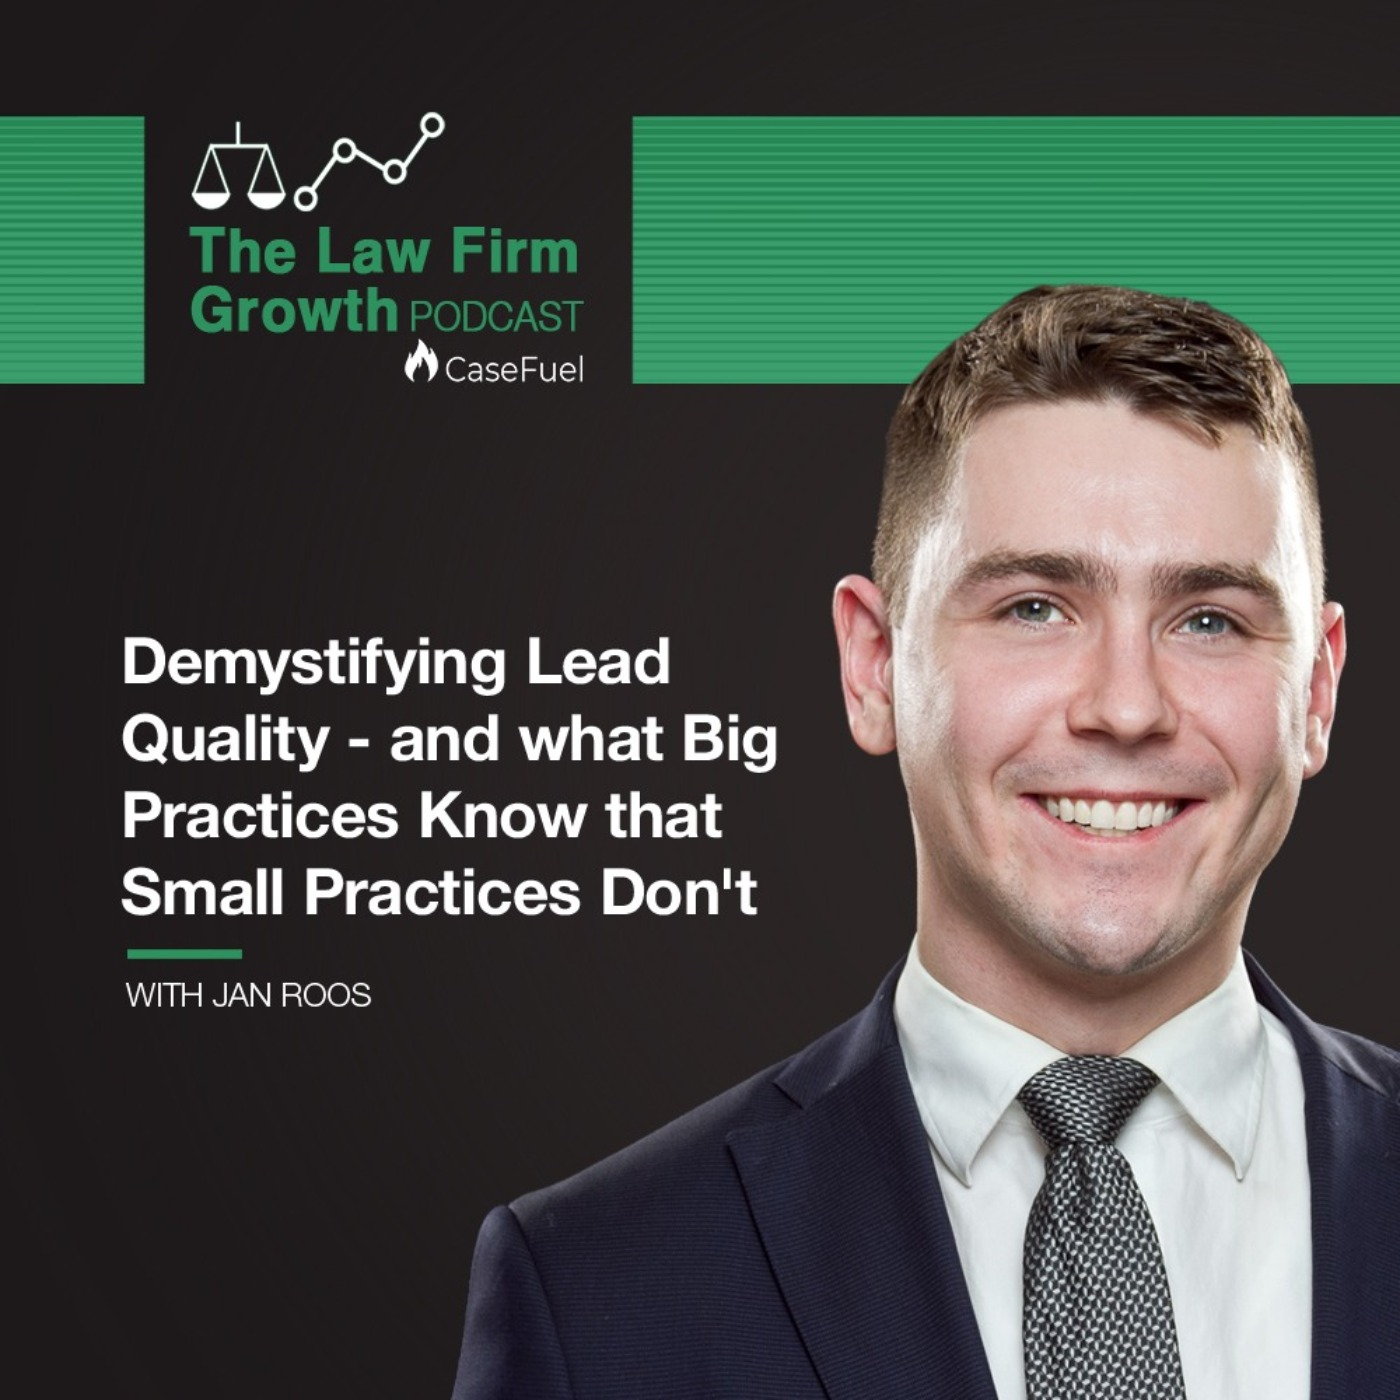 Demystifying Lead Quality - and What Big Practices Know That Small Practices Don't